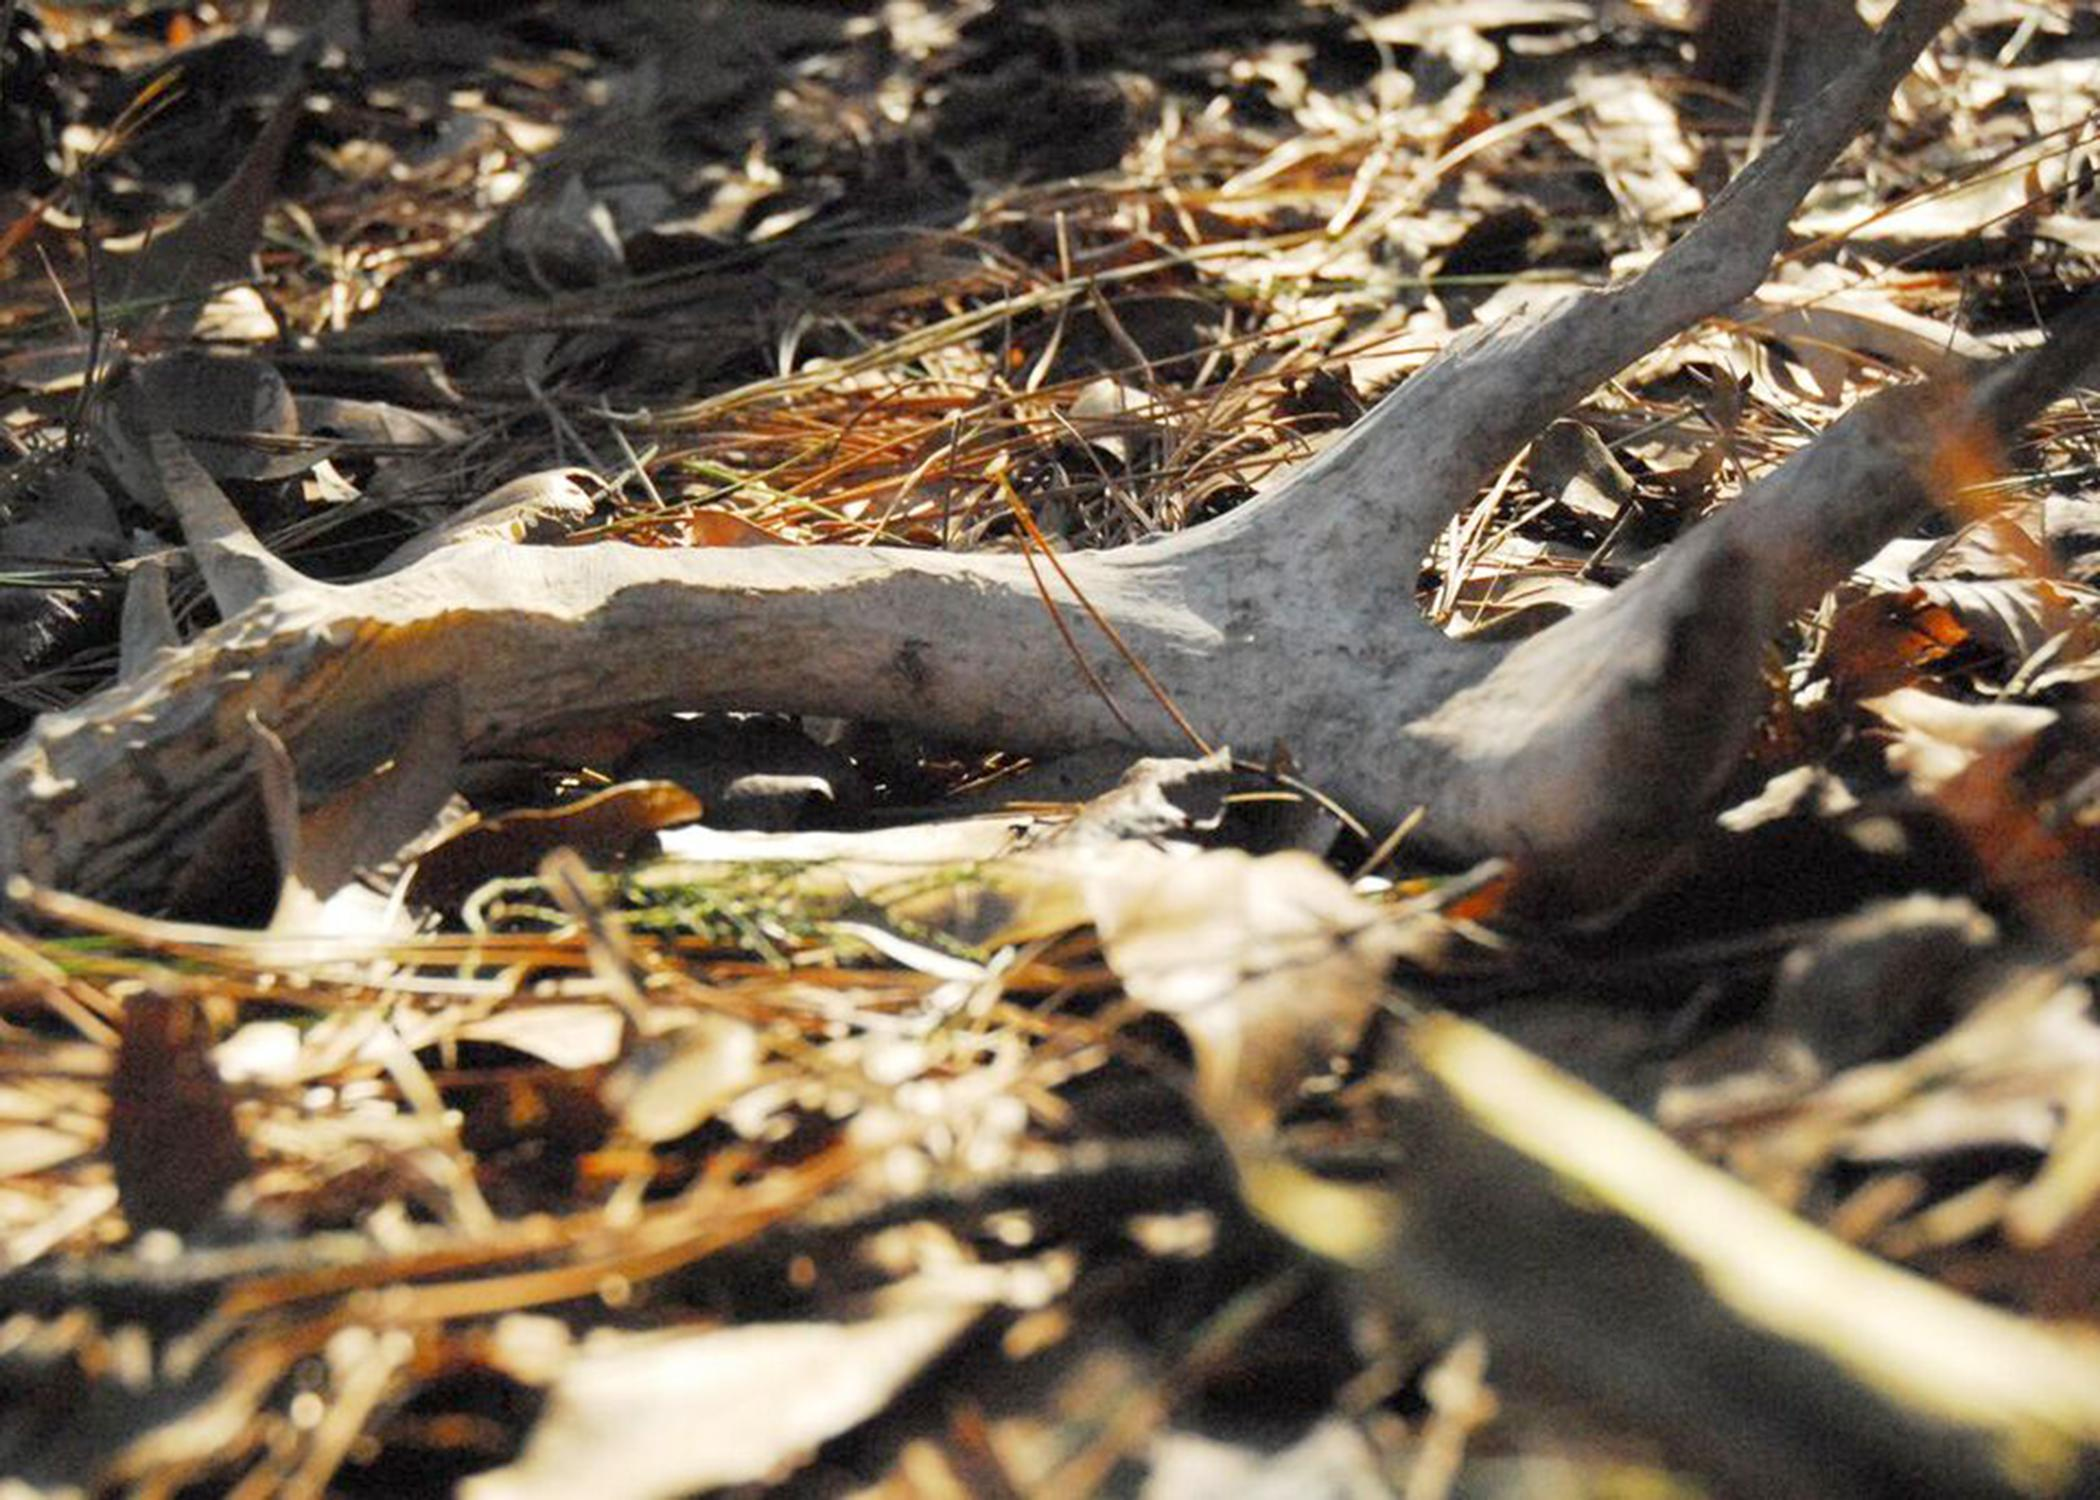 After the winter breeding season, male white-tailed deer shed their antlers, which sometimes can be found by naturalists walking through the woods. (Photo by MSU Extension/Melissa Grimes)